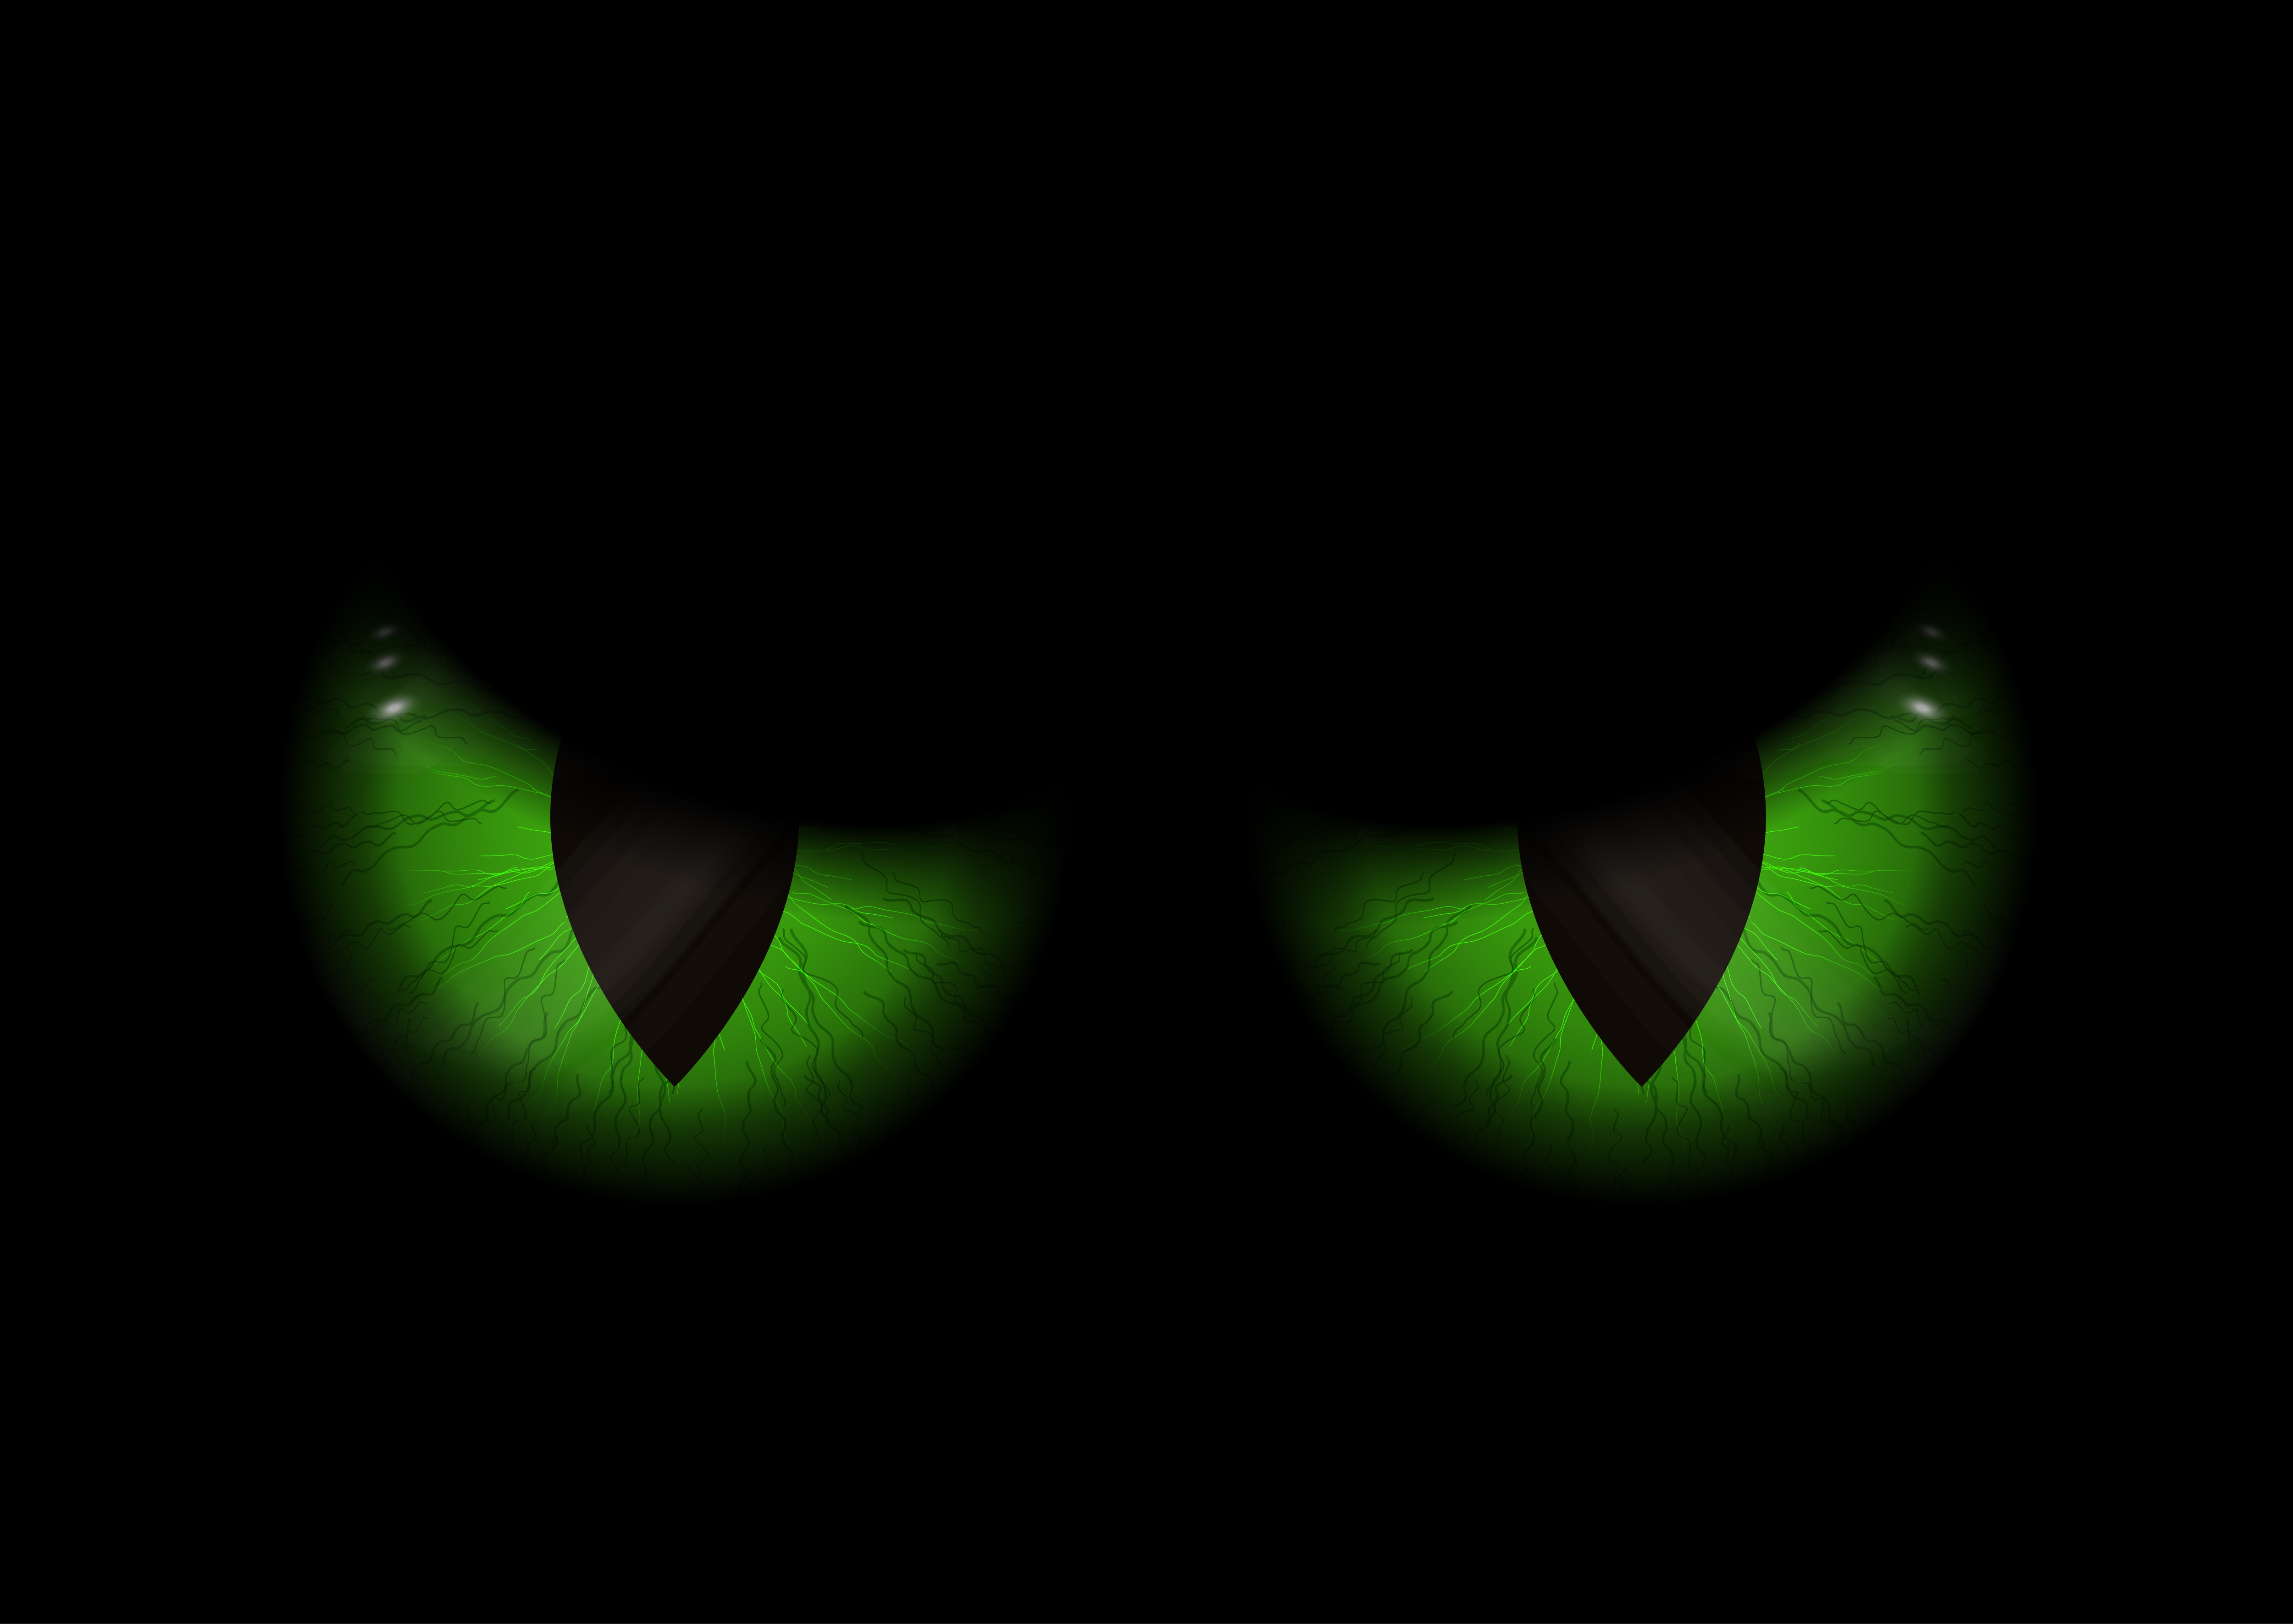 Green evil eyes background download free vector art - Evil eye pics ...